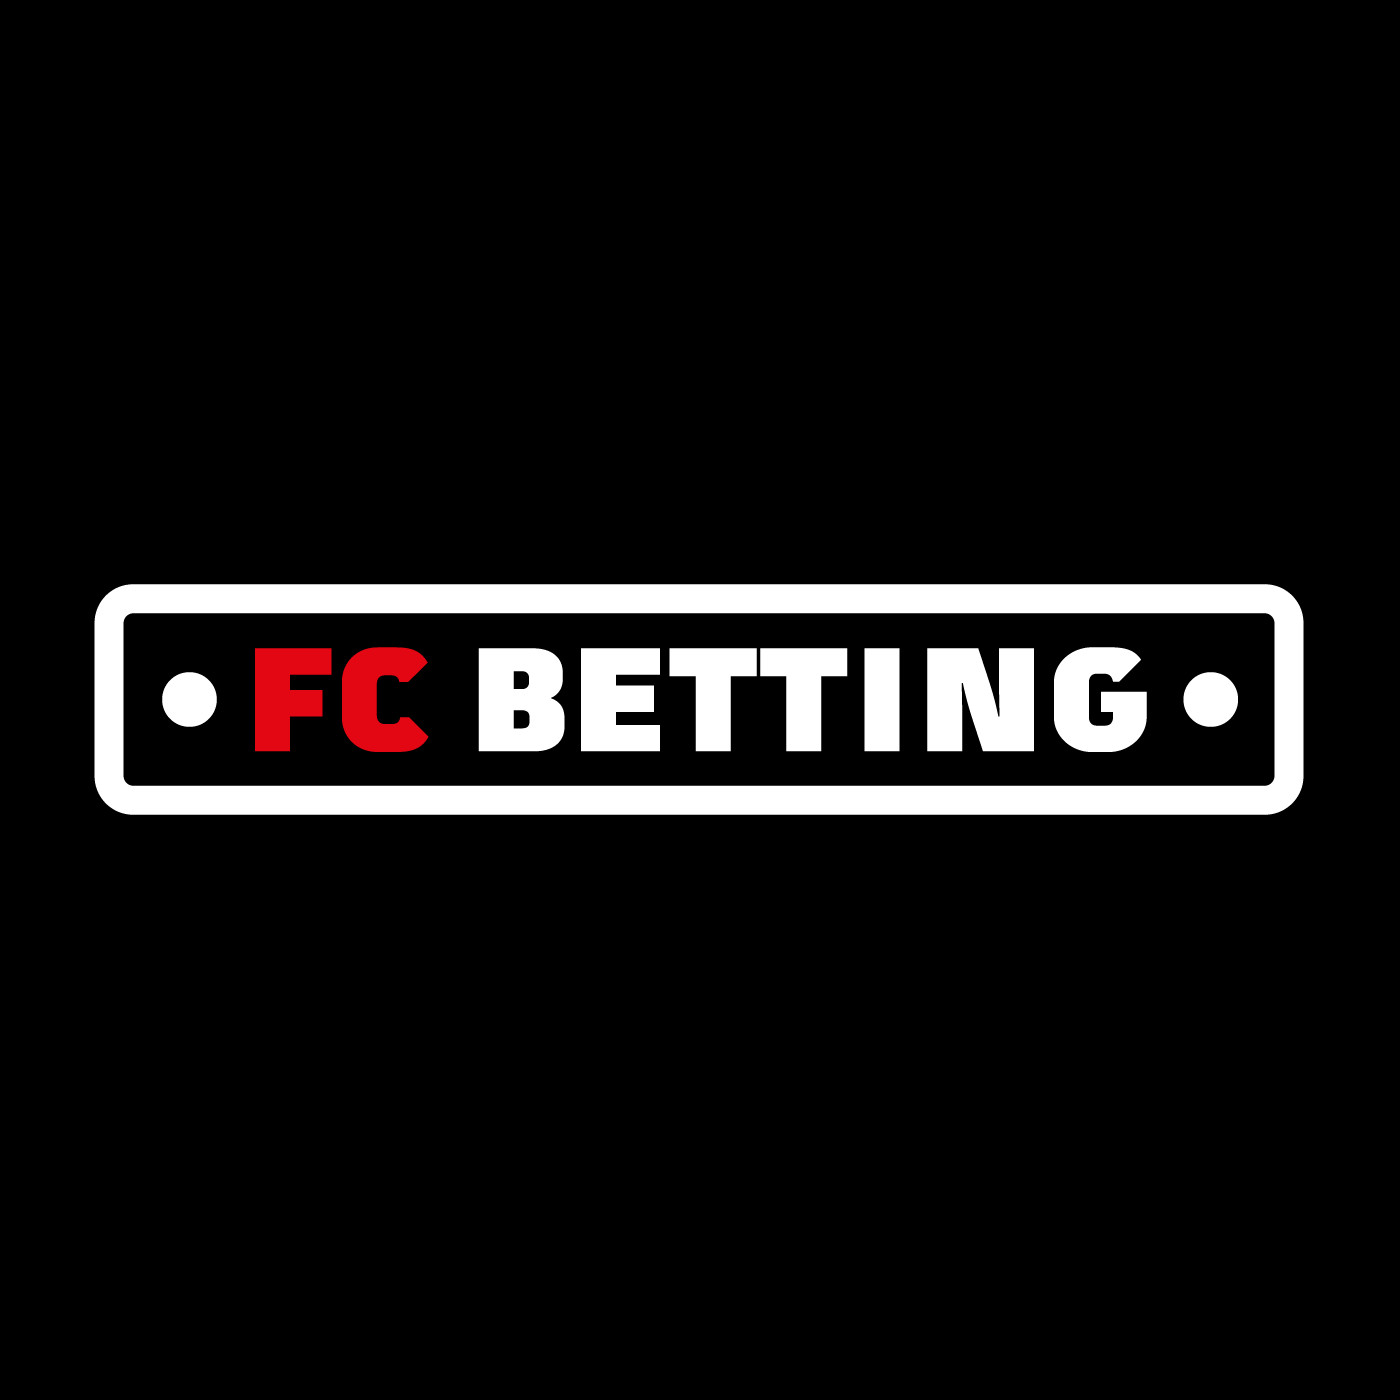 FC Betting logo